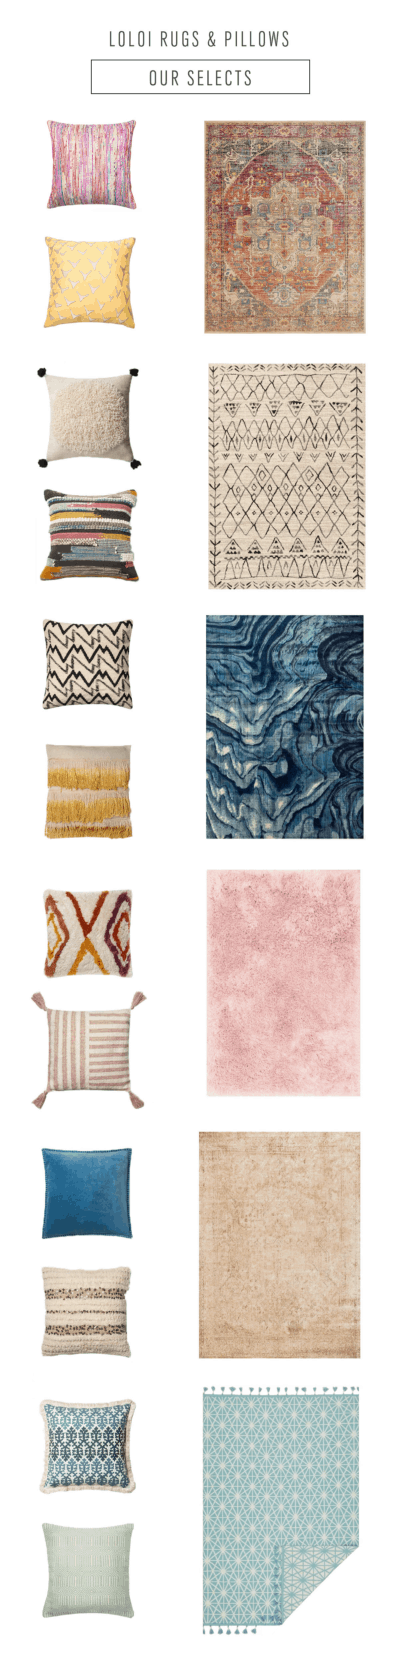 Our favorite Loloi Rugs & PIllows this Fall by top Houston lifestyle blogger Ashley Rose of Sugar & Cloth